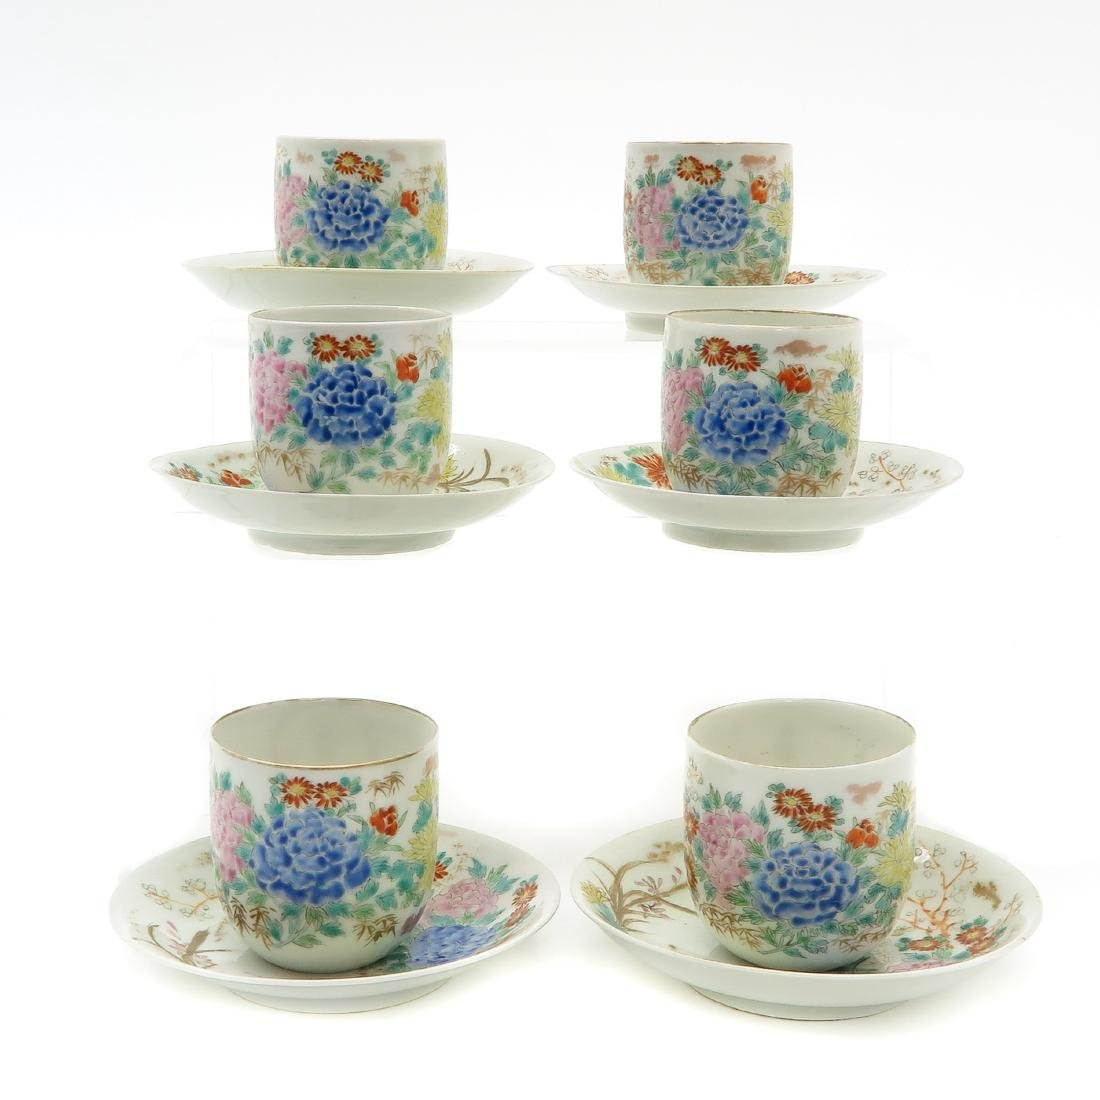 Lot of 6 Cups and Saucers - 3